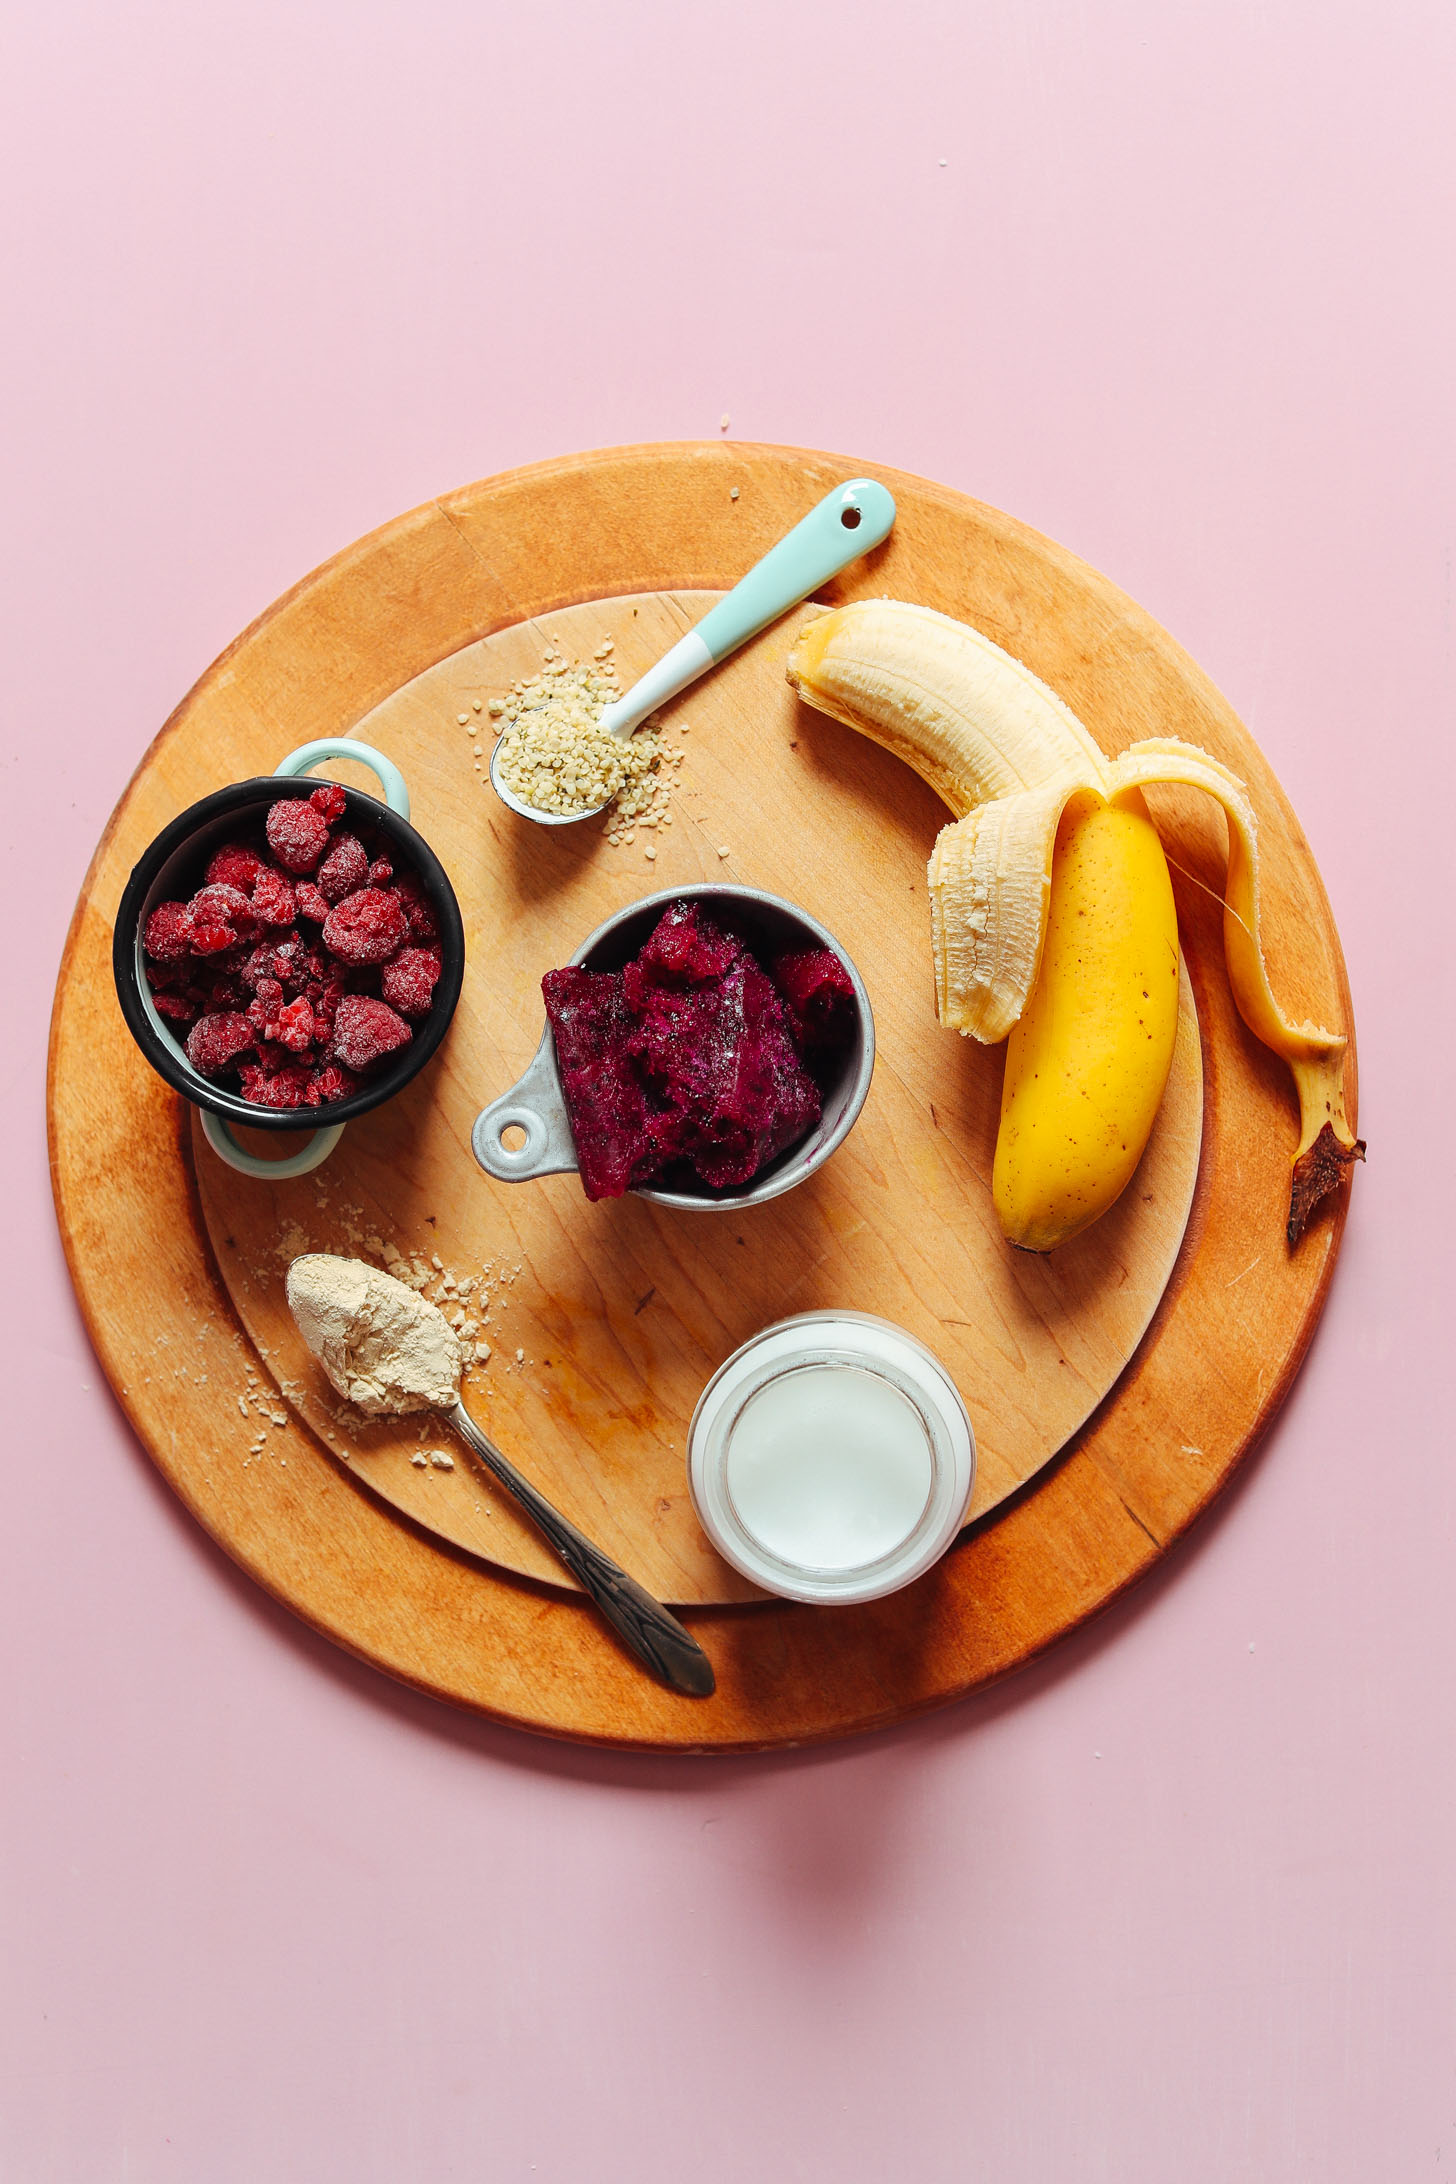 Wood cutting board with banana, hemp seeds, frozen raspberries, dragonfruit, vegan protein powder, and coconut milk for making a Dragon Fruit Smoothie Bowl